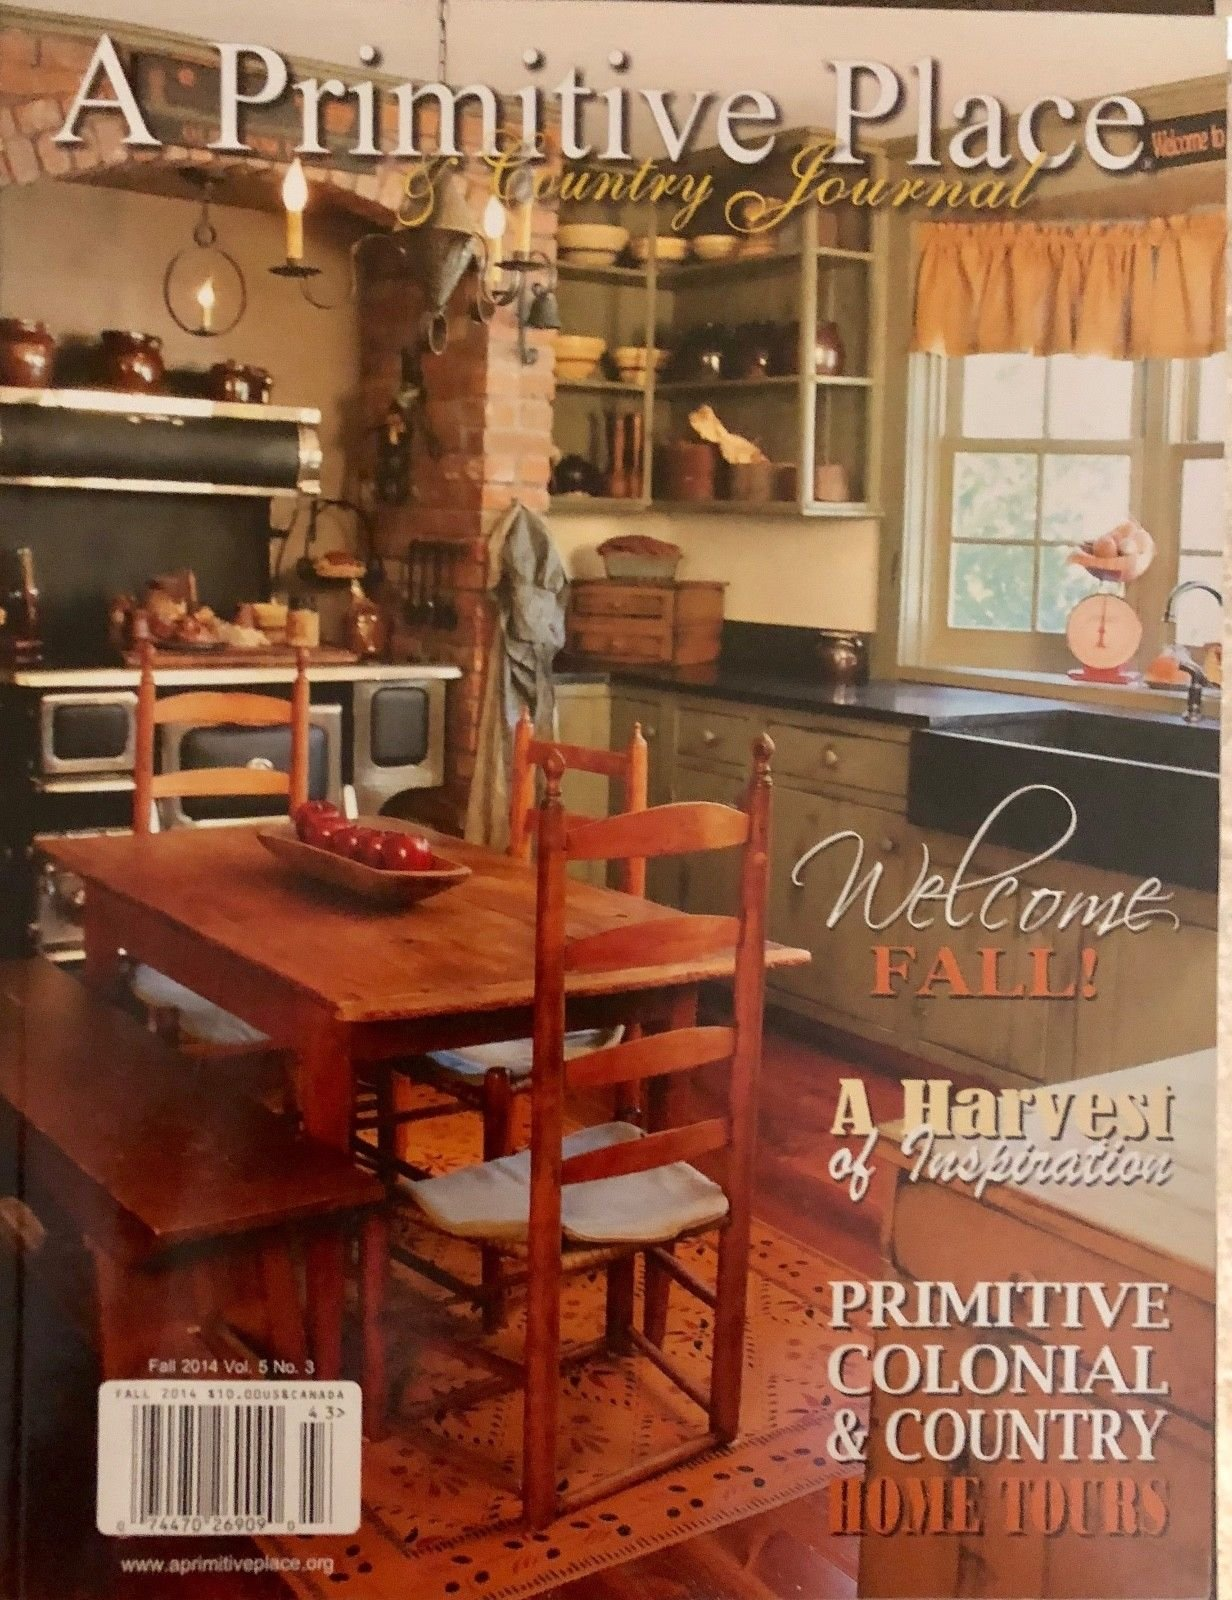 A PRIMITIVE PLACE & COUNTRY JOURNAL FALL 2014 VOL.5 NO.03** by Generic (Image #1)